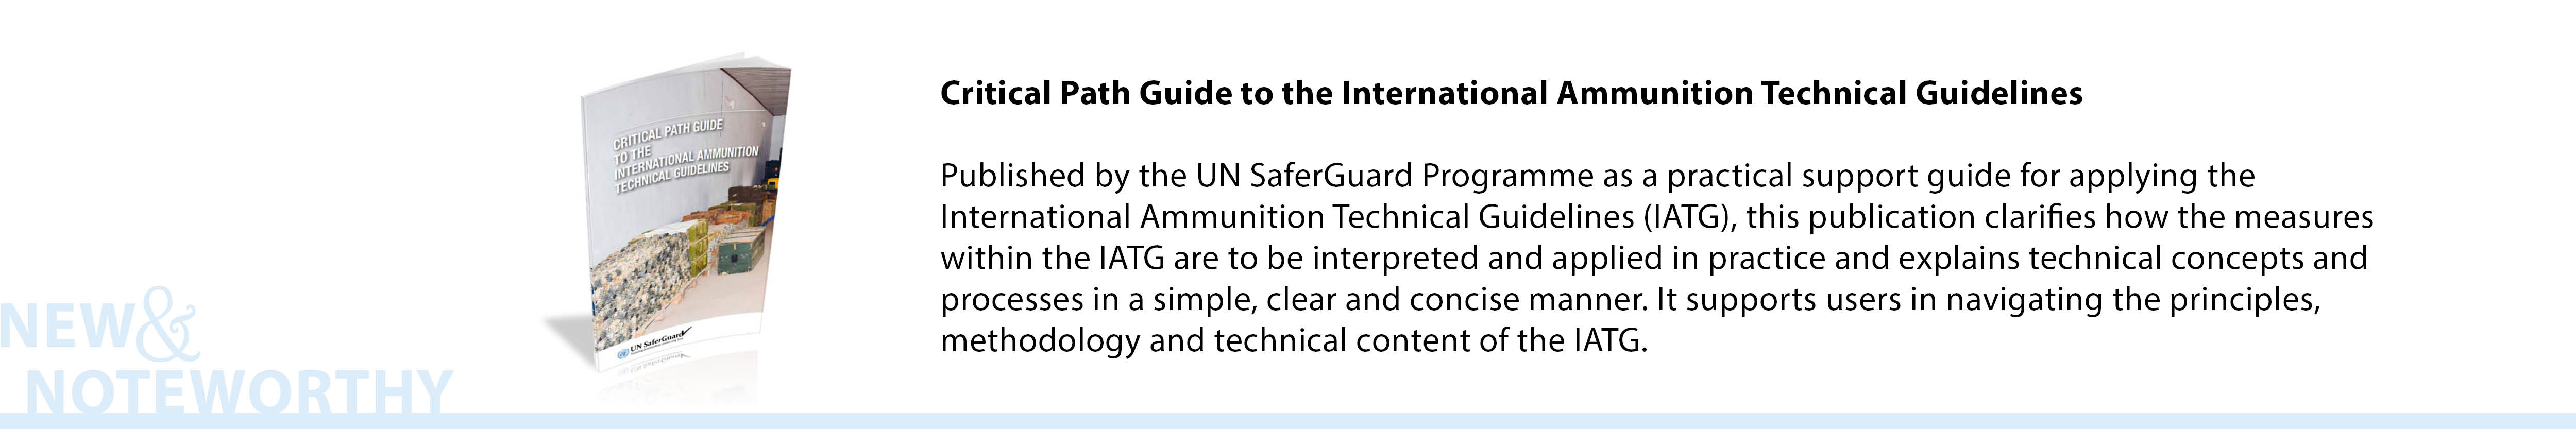 Critical Path Guide to the International Ammunition Technical Guidelines - Published by the UN SaferGuard Programme as a practical support guide for applying the International Ammunition Technical Guidelines (IATG), this publication clarifies how the measures within the IATG are to be interpreted and applied in practice and explains technical concepts and processes in a simple, clear and concise manner. It supports users in navigating the principles, methodology and technical content of the IATG.